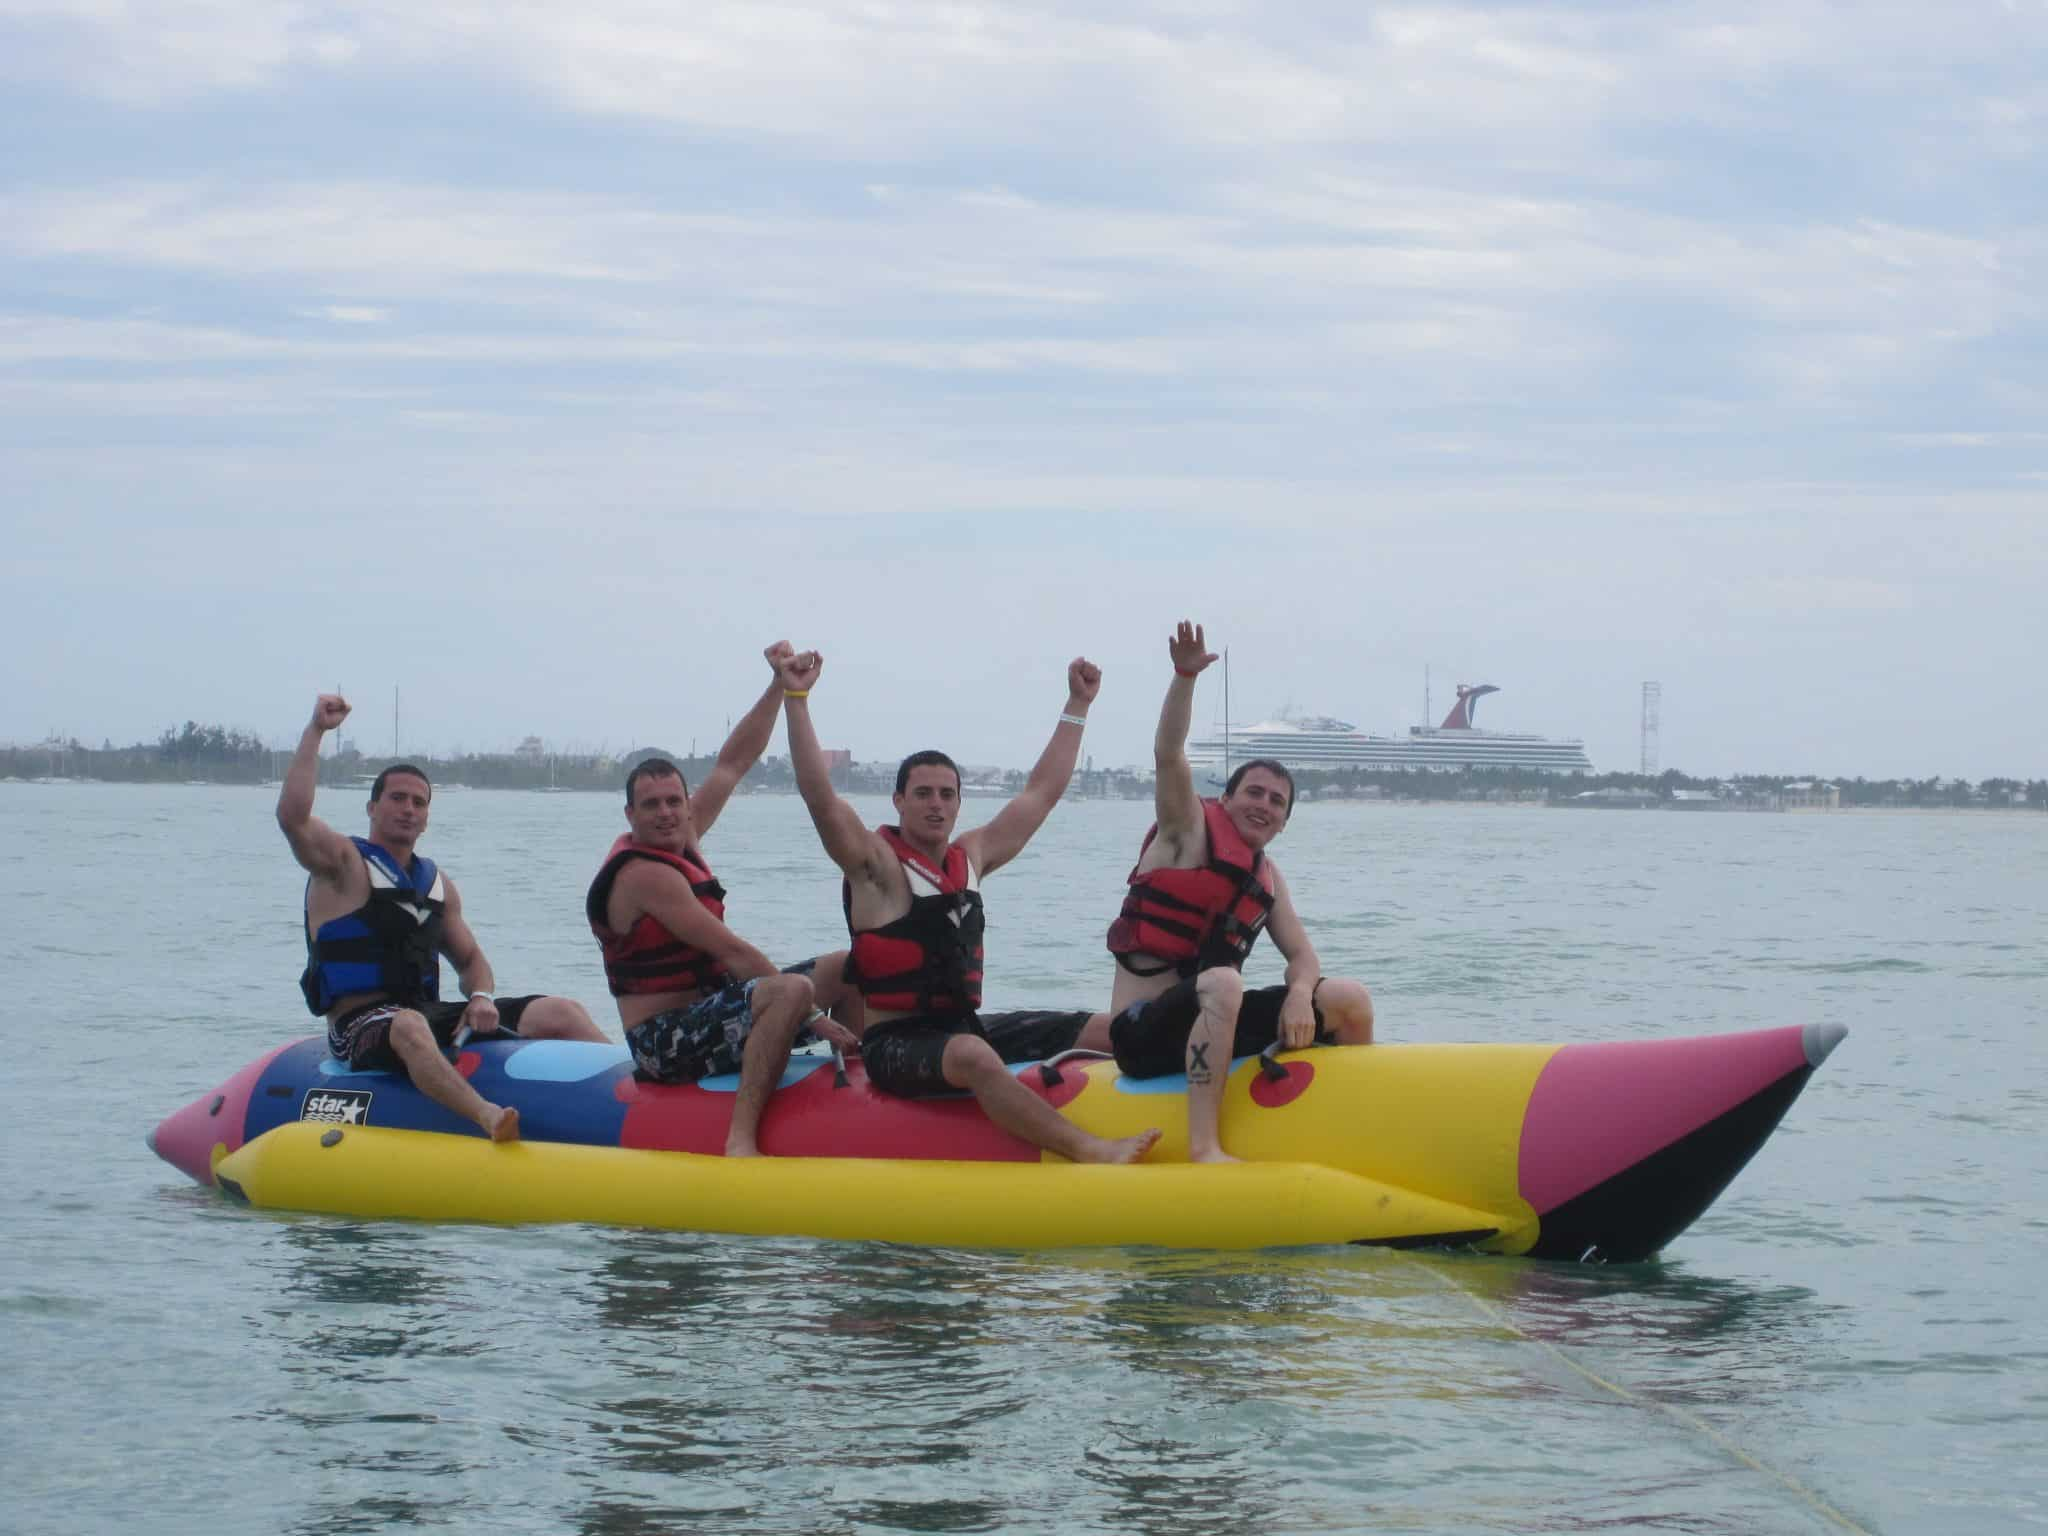 4-sons-of-rare-finds-ceo-melanie-celebrate-on-banana-boat-key-west